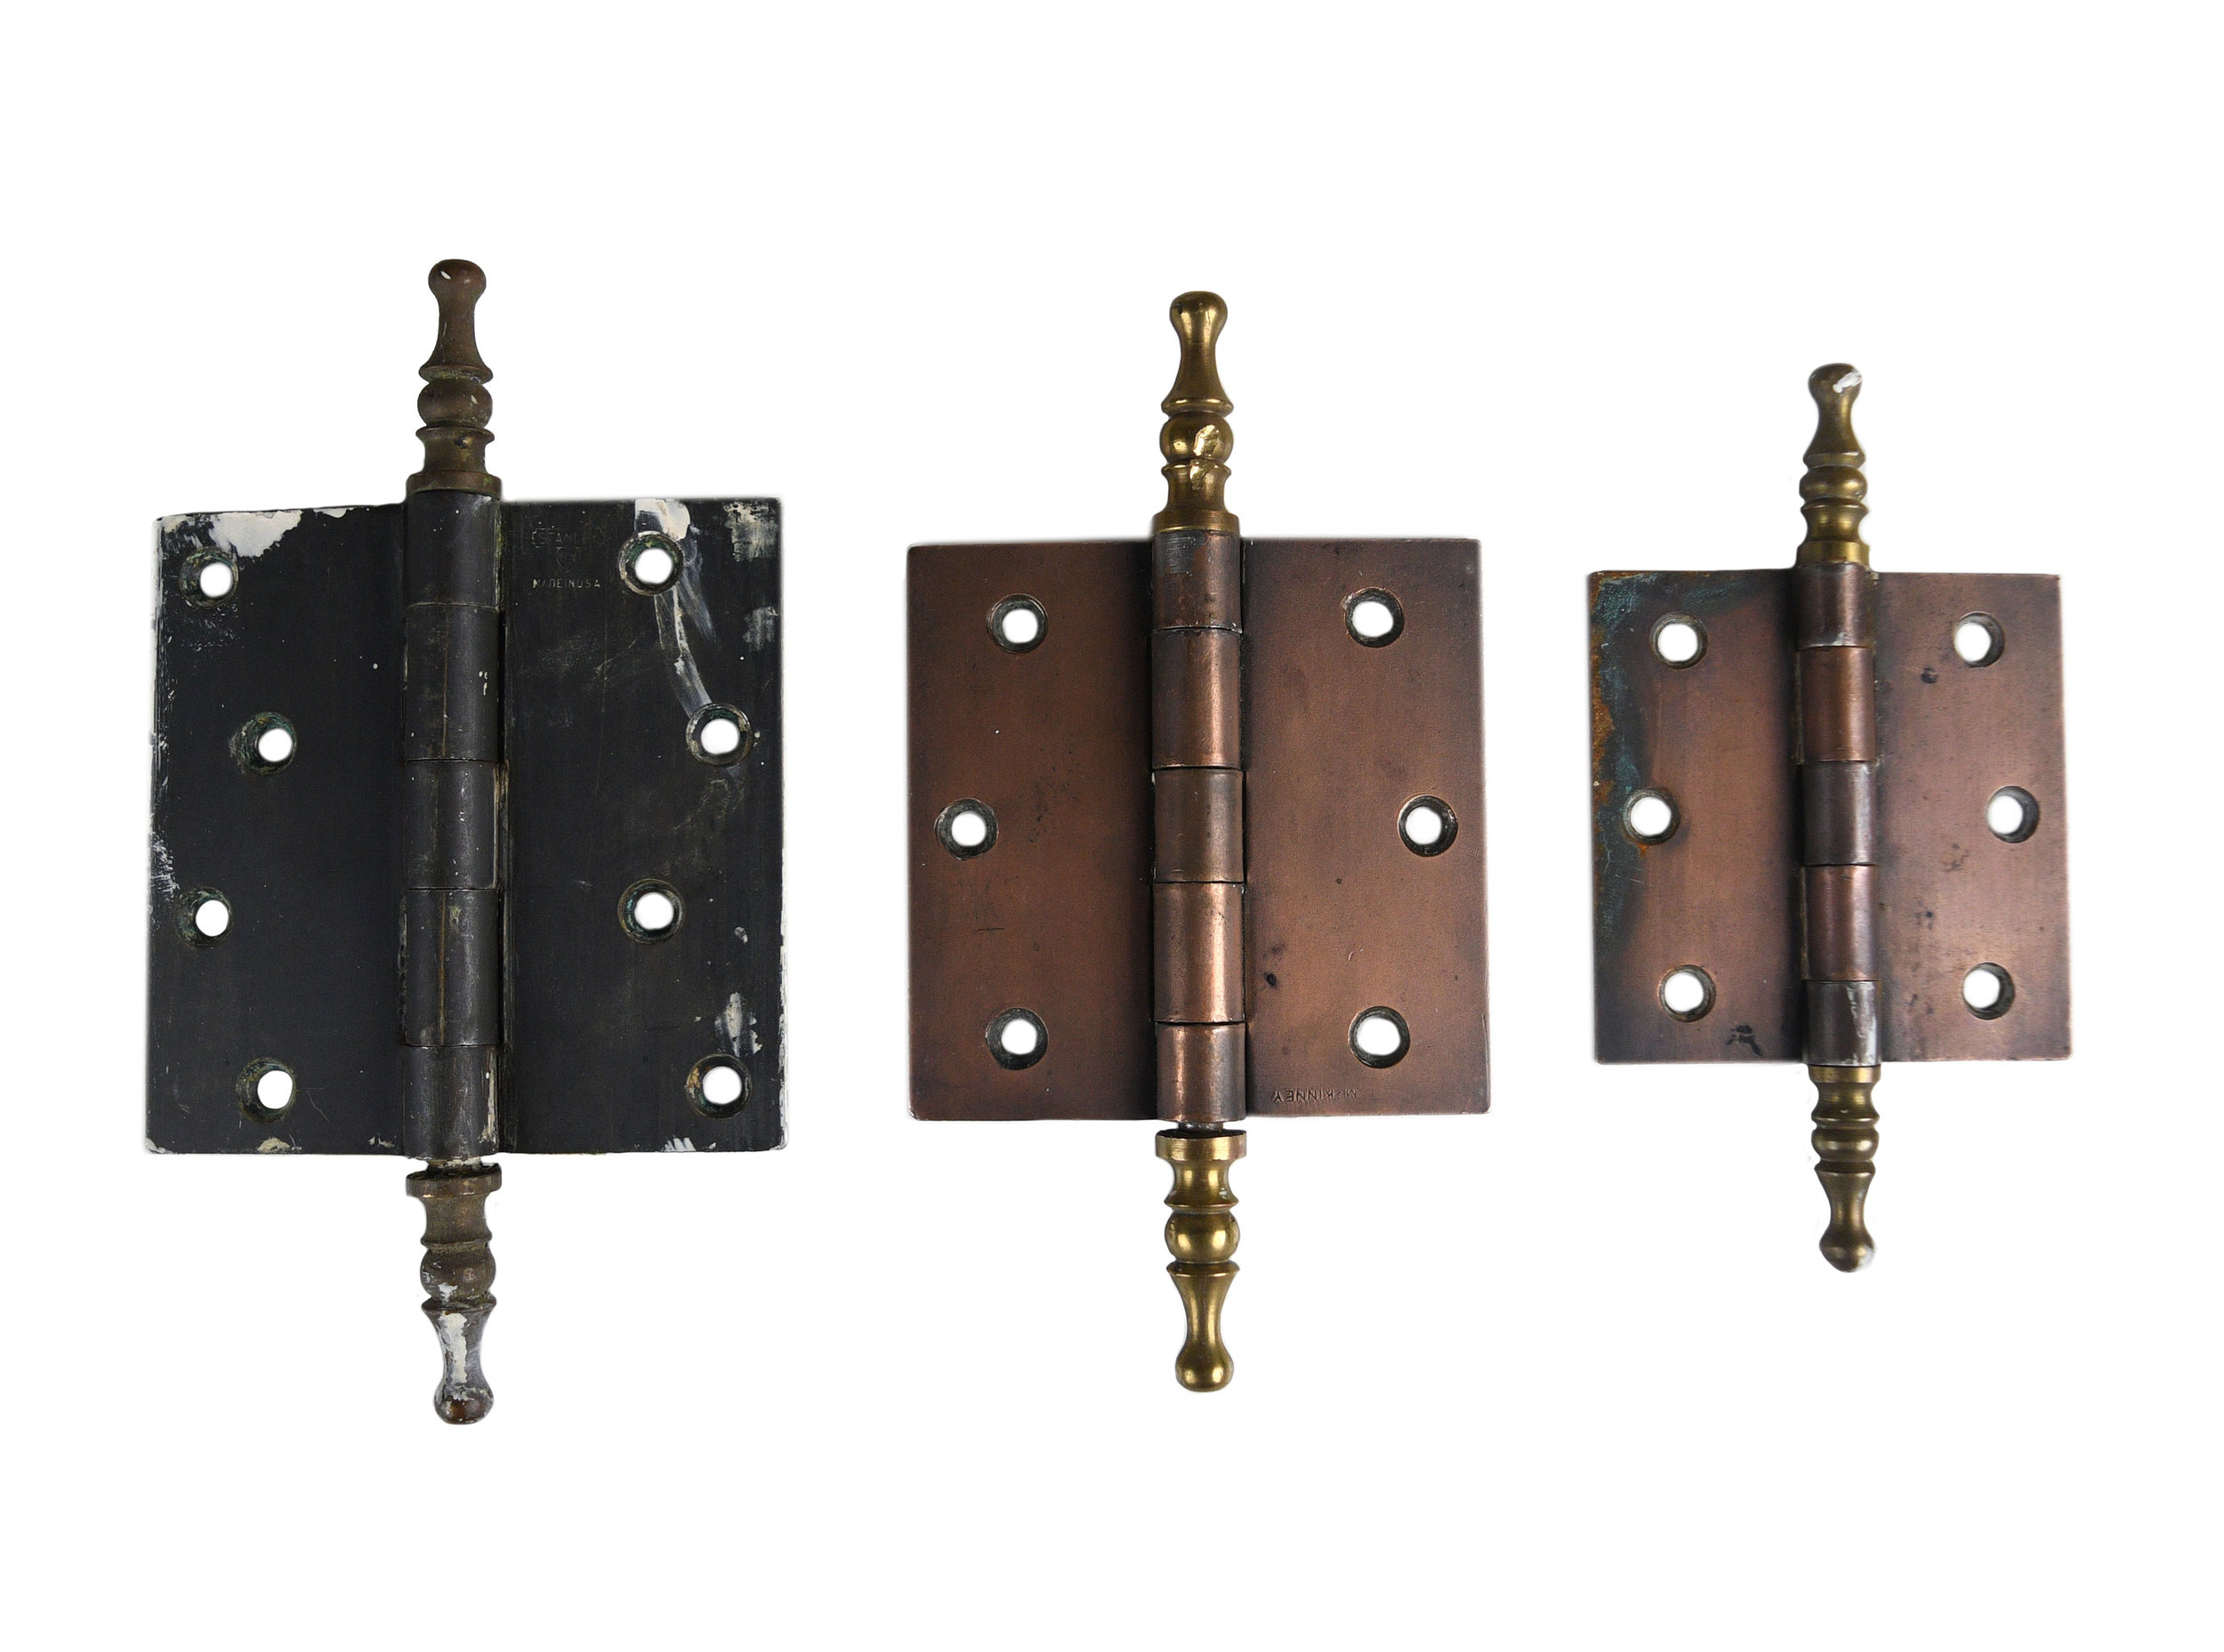 STEEL AND BRASS STEEPLE HINGES AA# 46267   20 small hinges, 8 medium hinges, 18 large hinges available from $18.00 each